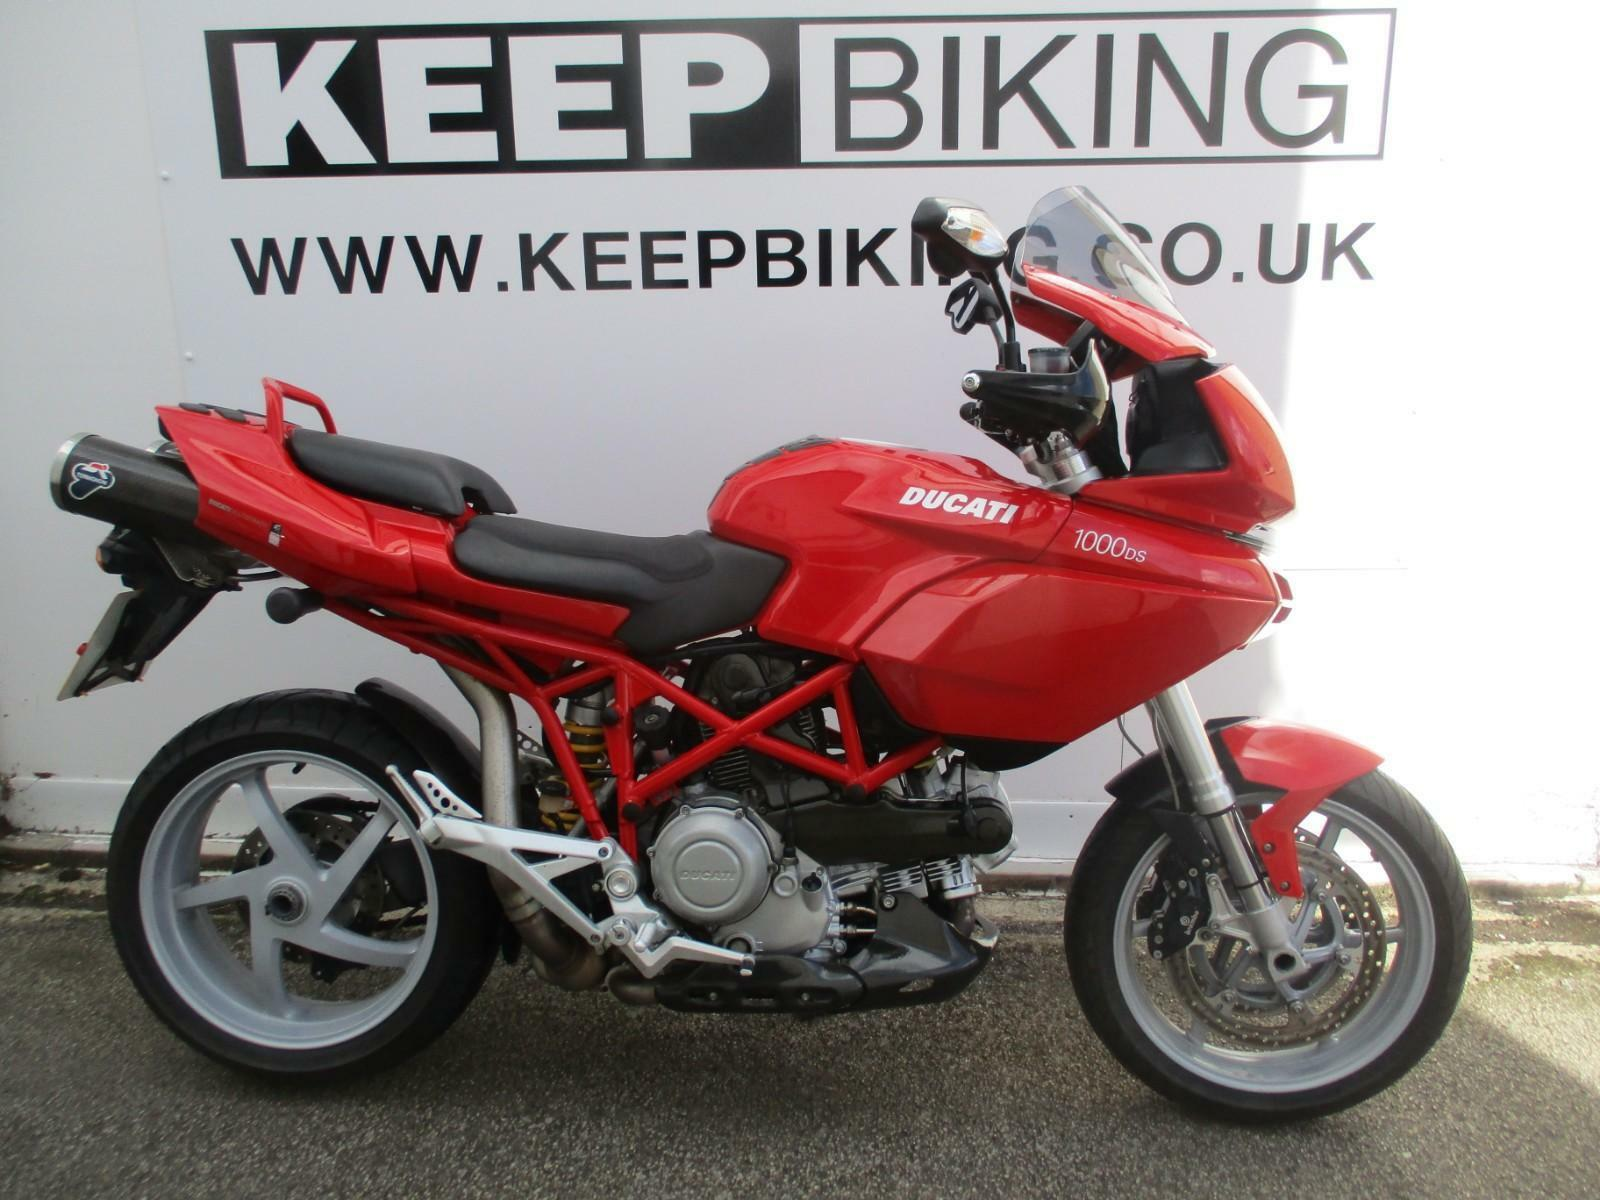 2003 Ducati Multistrada 1000Ds 13,574 Miles. Full Service History. 1 of 12  See More